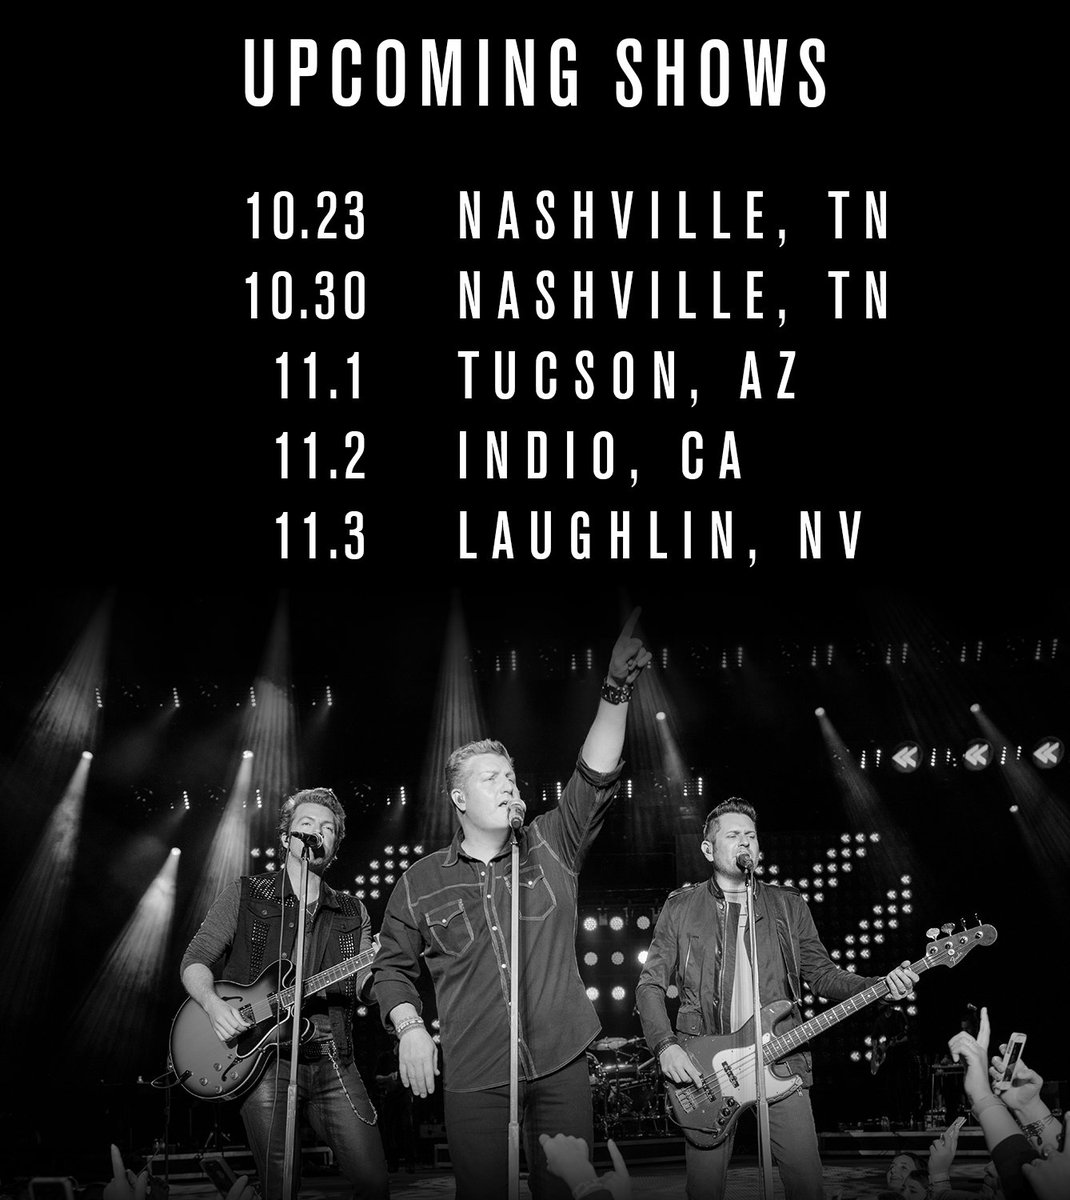 We've got 5 more shows in 2018! Who's coming out to see us? Tickets at rascalflatts.com/events